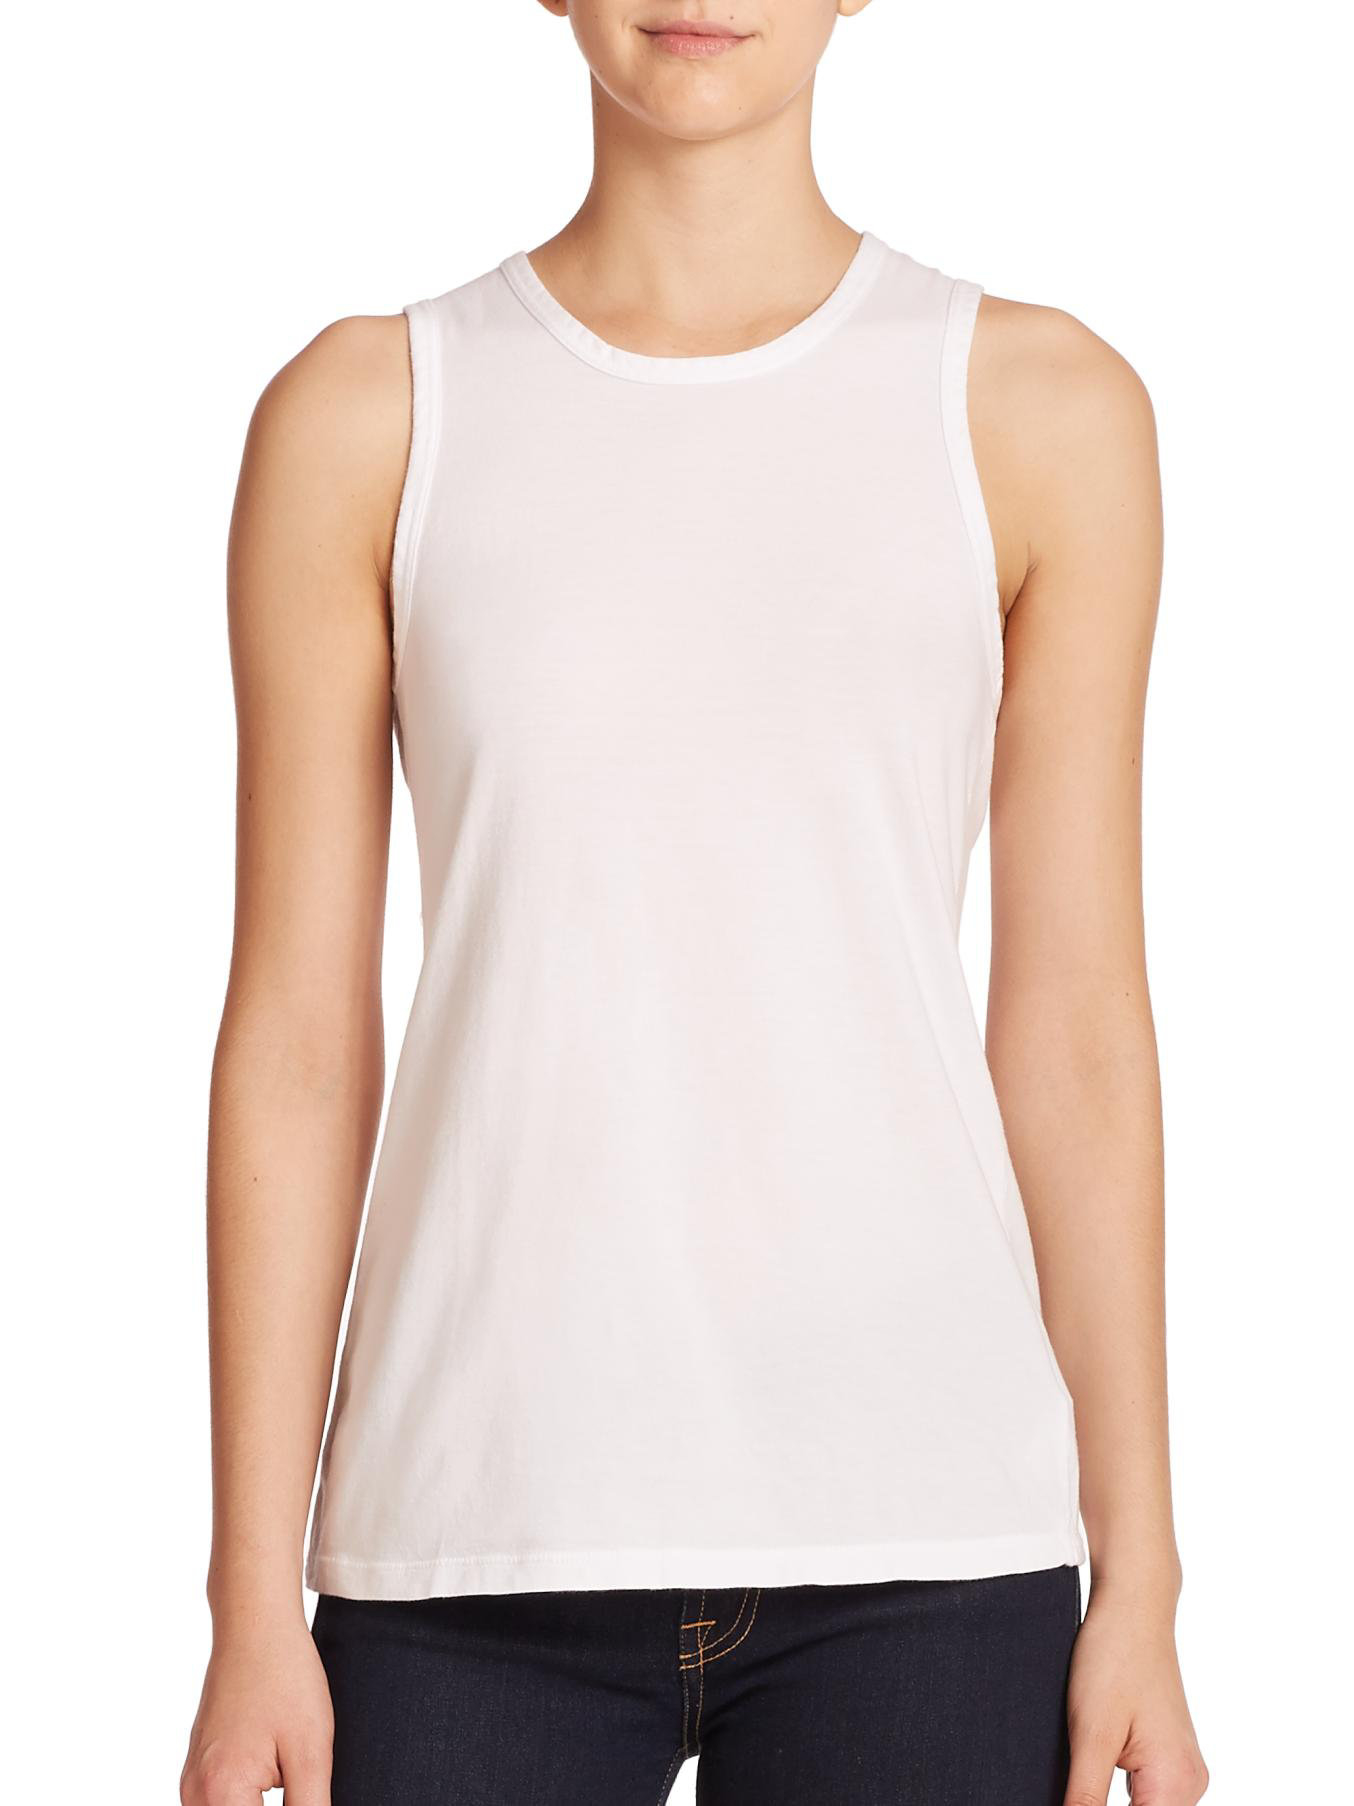 Lyst - James Perse Wrap-back Tank Top in White